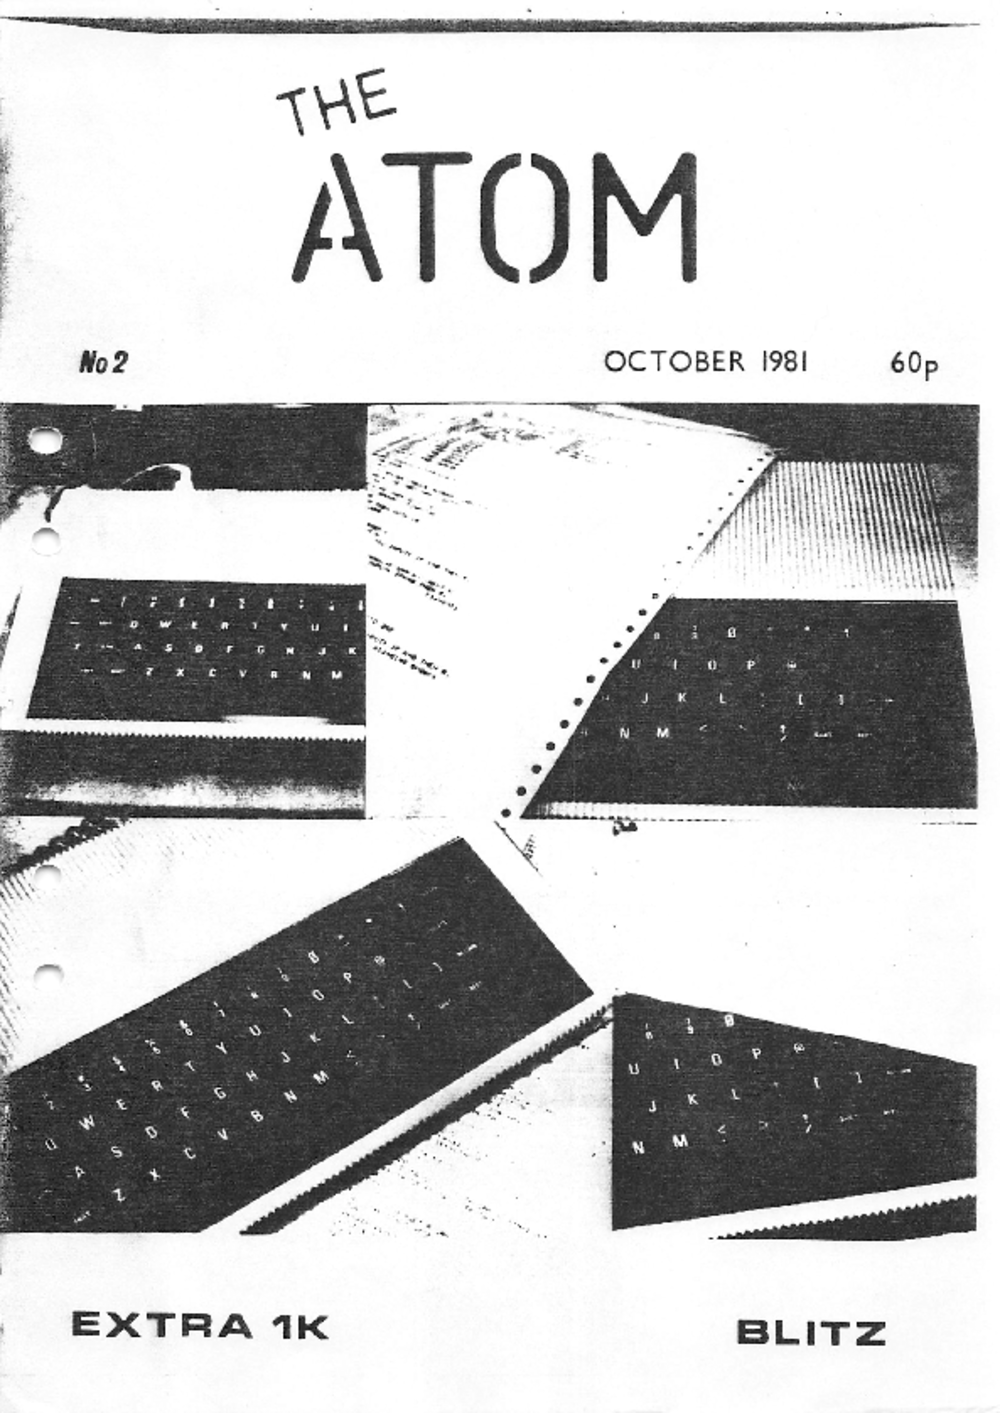 Article: The Atom - October 1981 - No 2